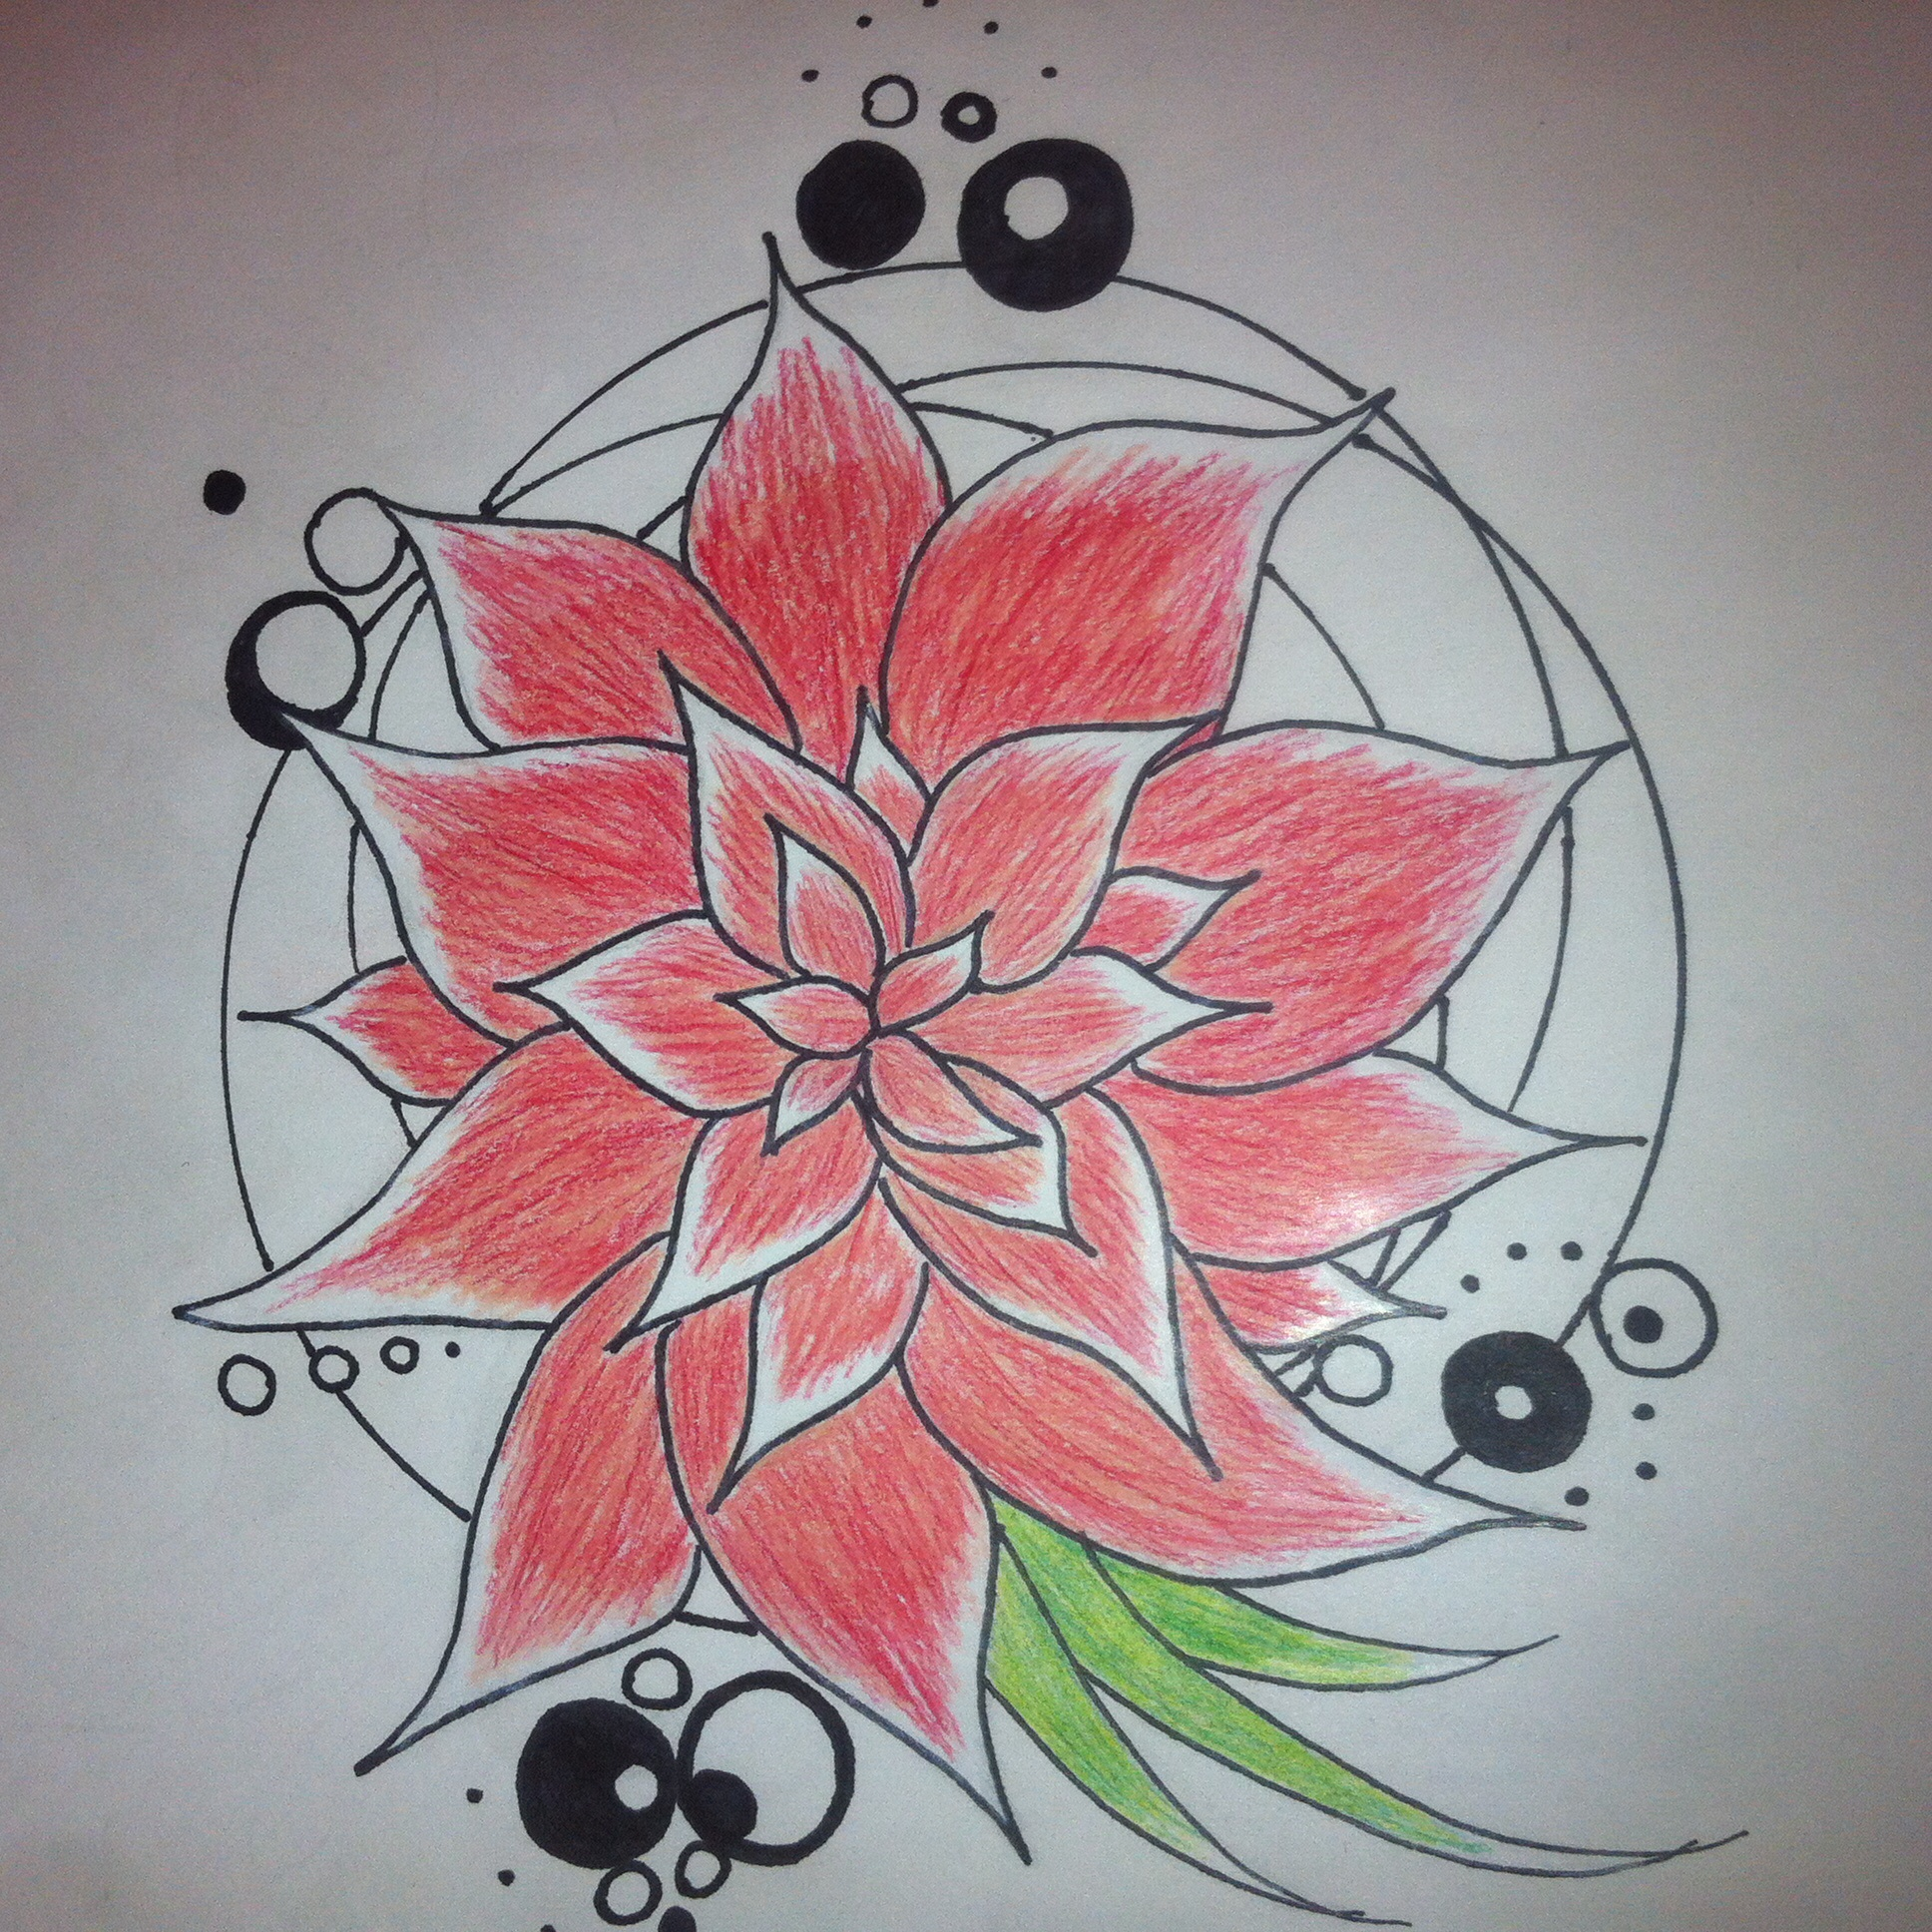 48fc1fa0f8c14 Rose garden tattoo with vine detail. The roses can - Tattoo.com